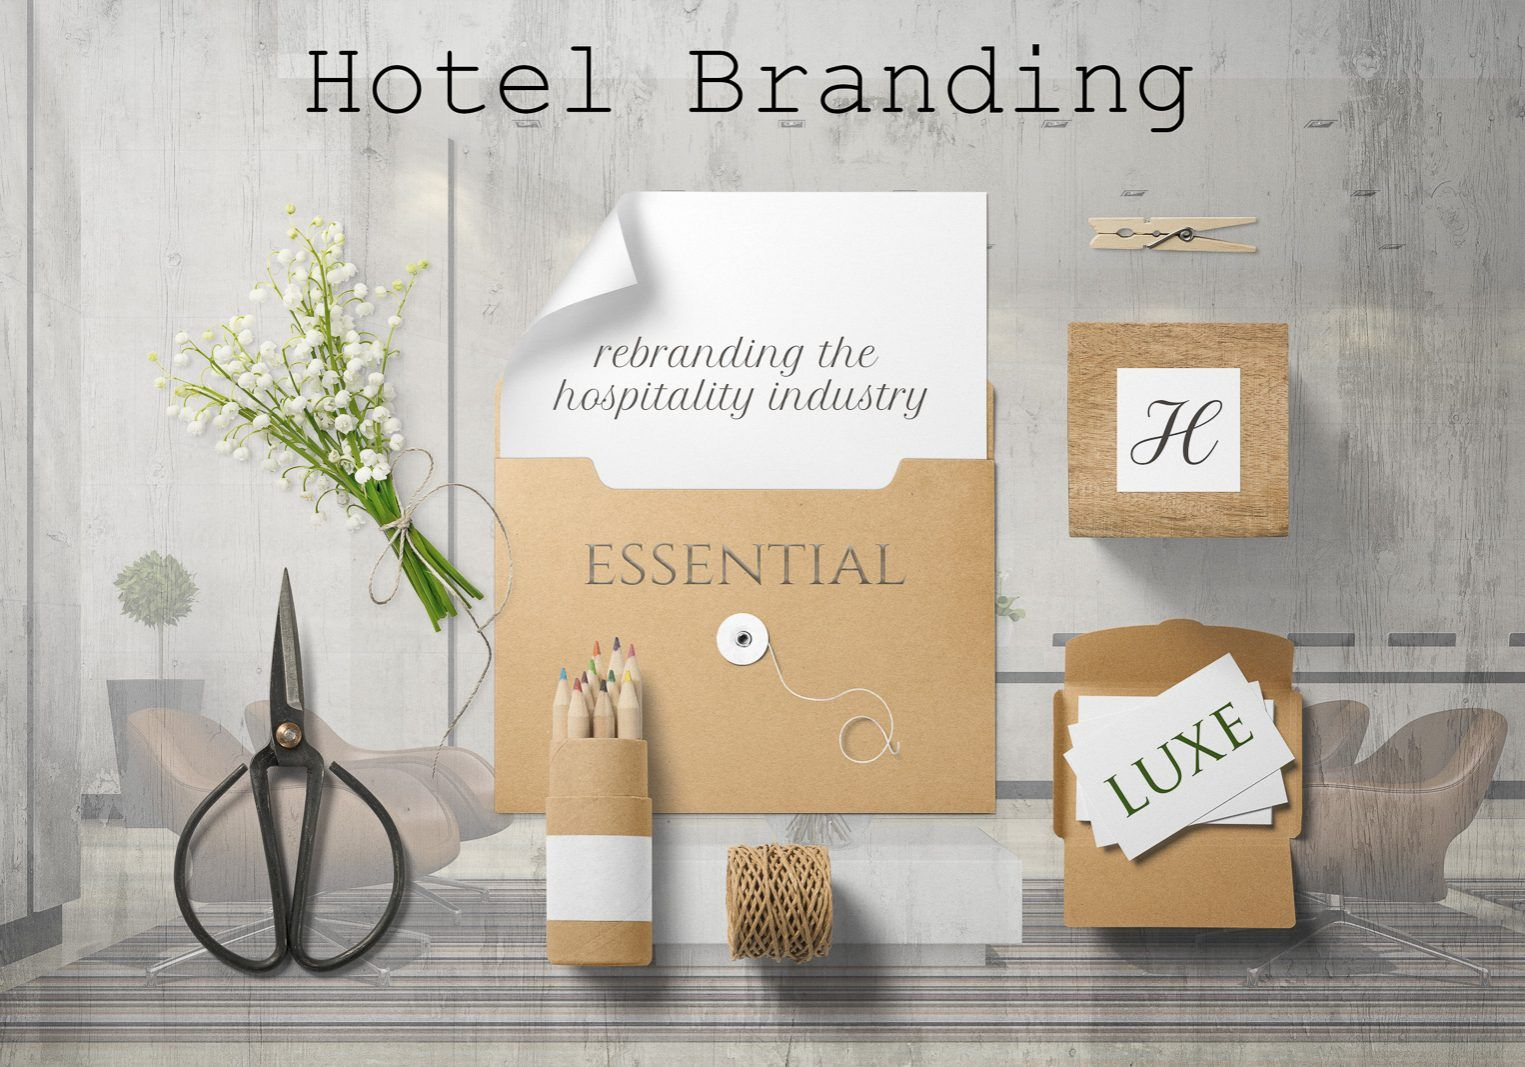 Digital Marketing Services For Restaurants And Hotels With Images